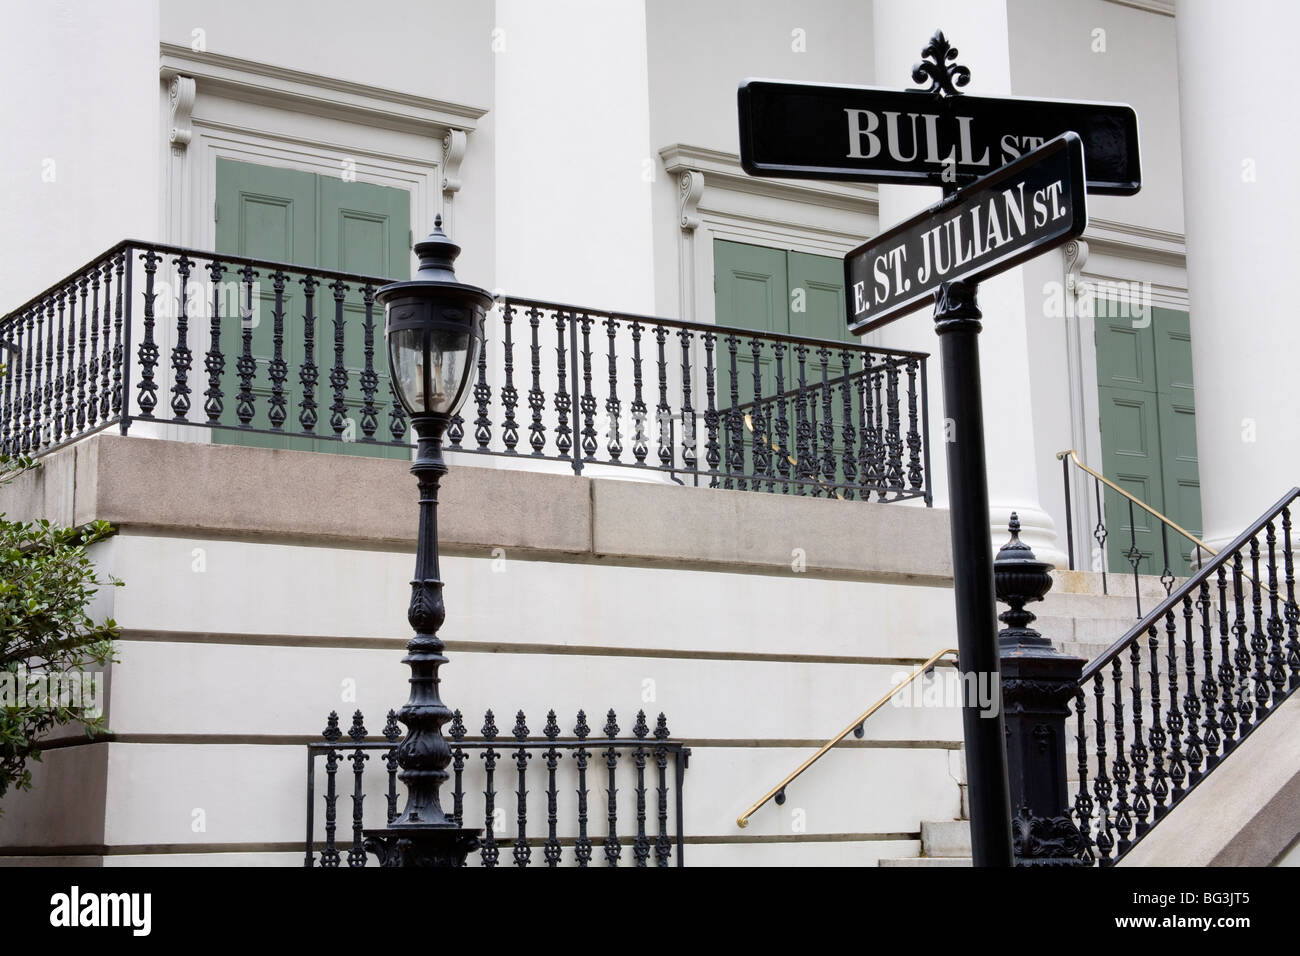 Road signs in Johnson Square, Savannah, Georgia, United States of America, North America - Stock Image